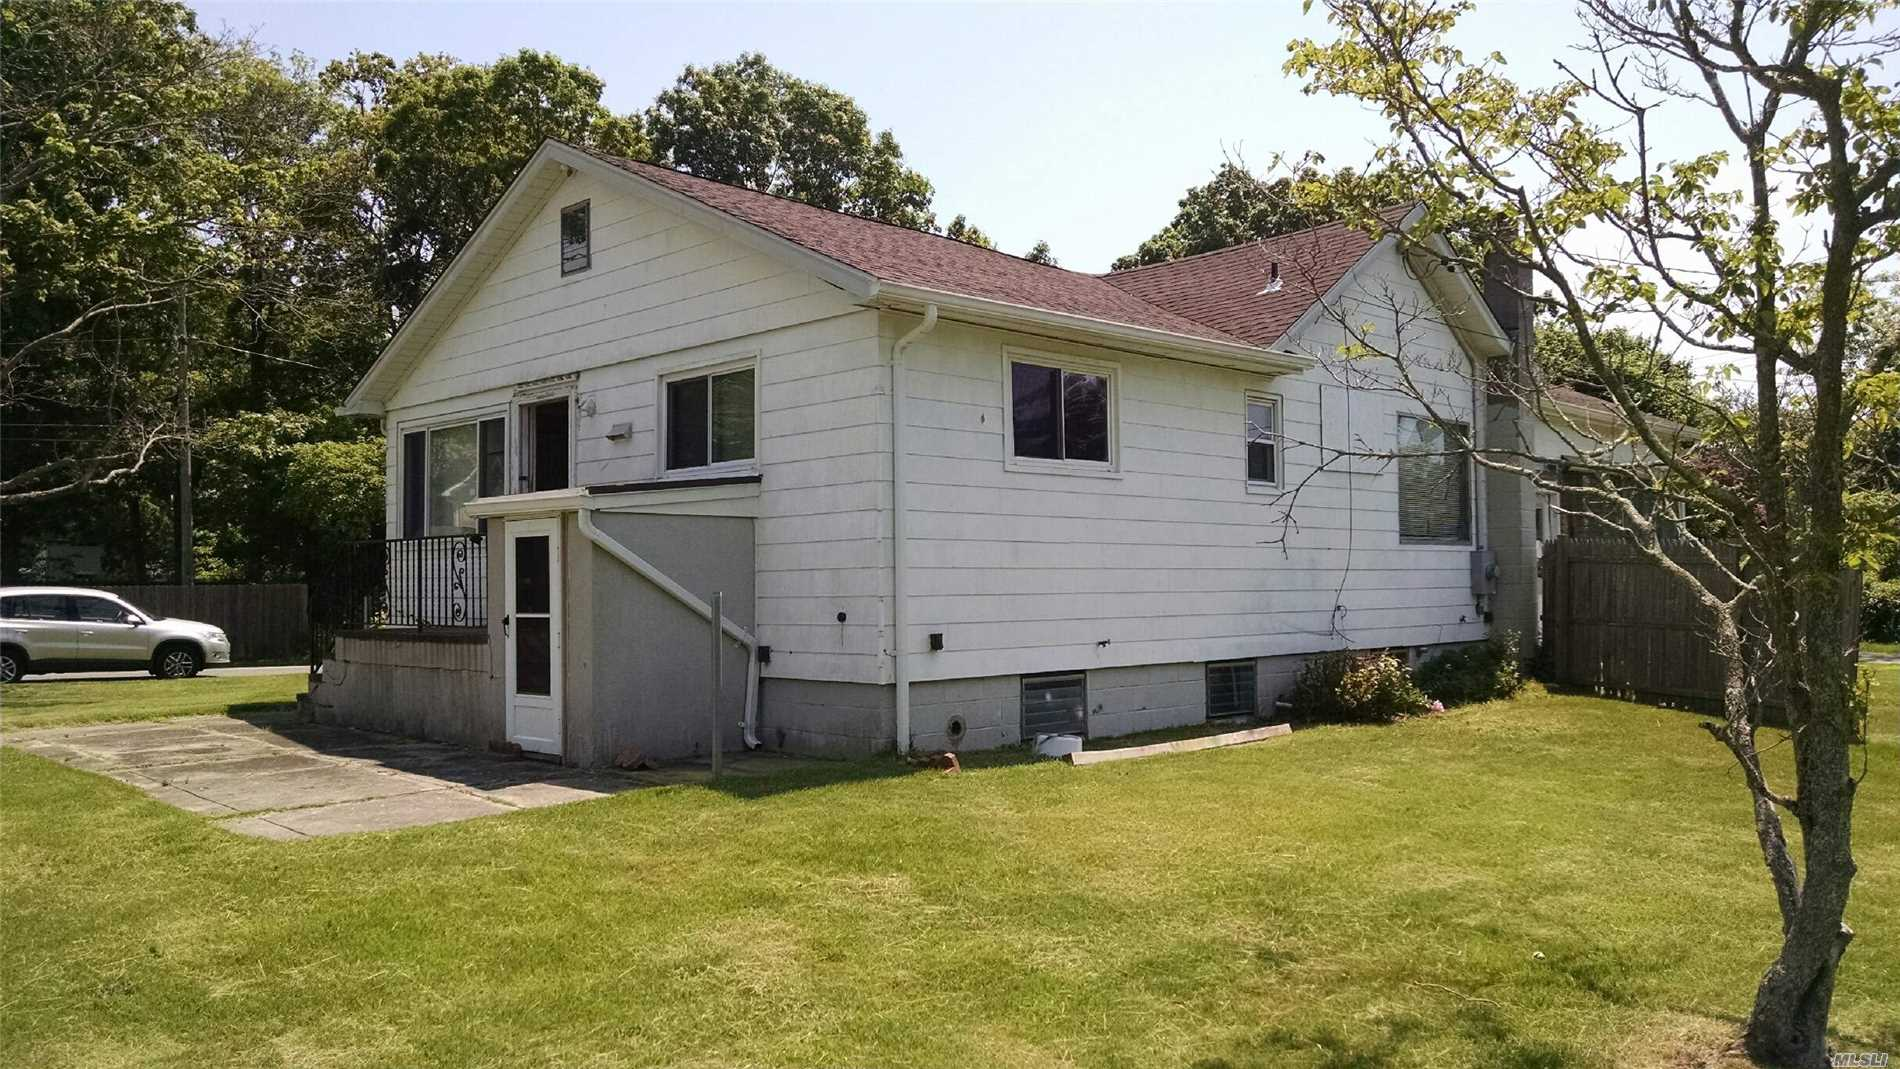 Photo of home for sale at 137 Dogwood Rd, Mastic Beach NY